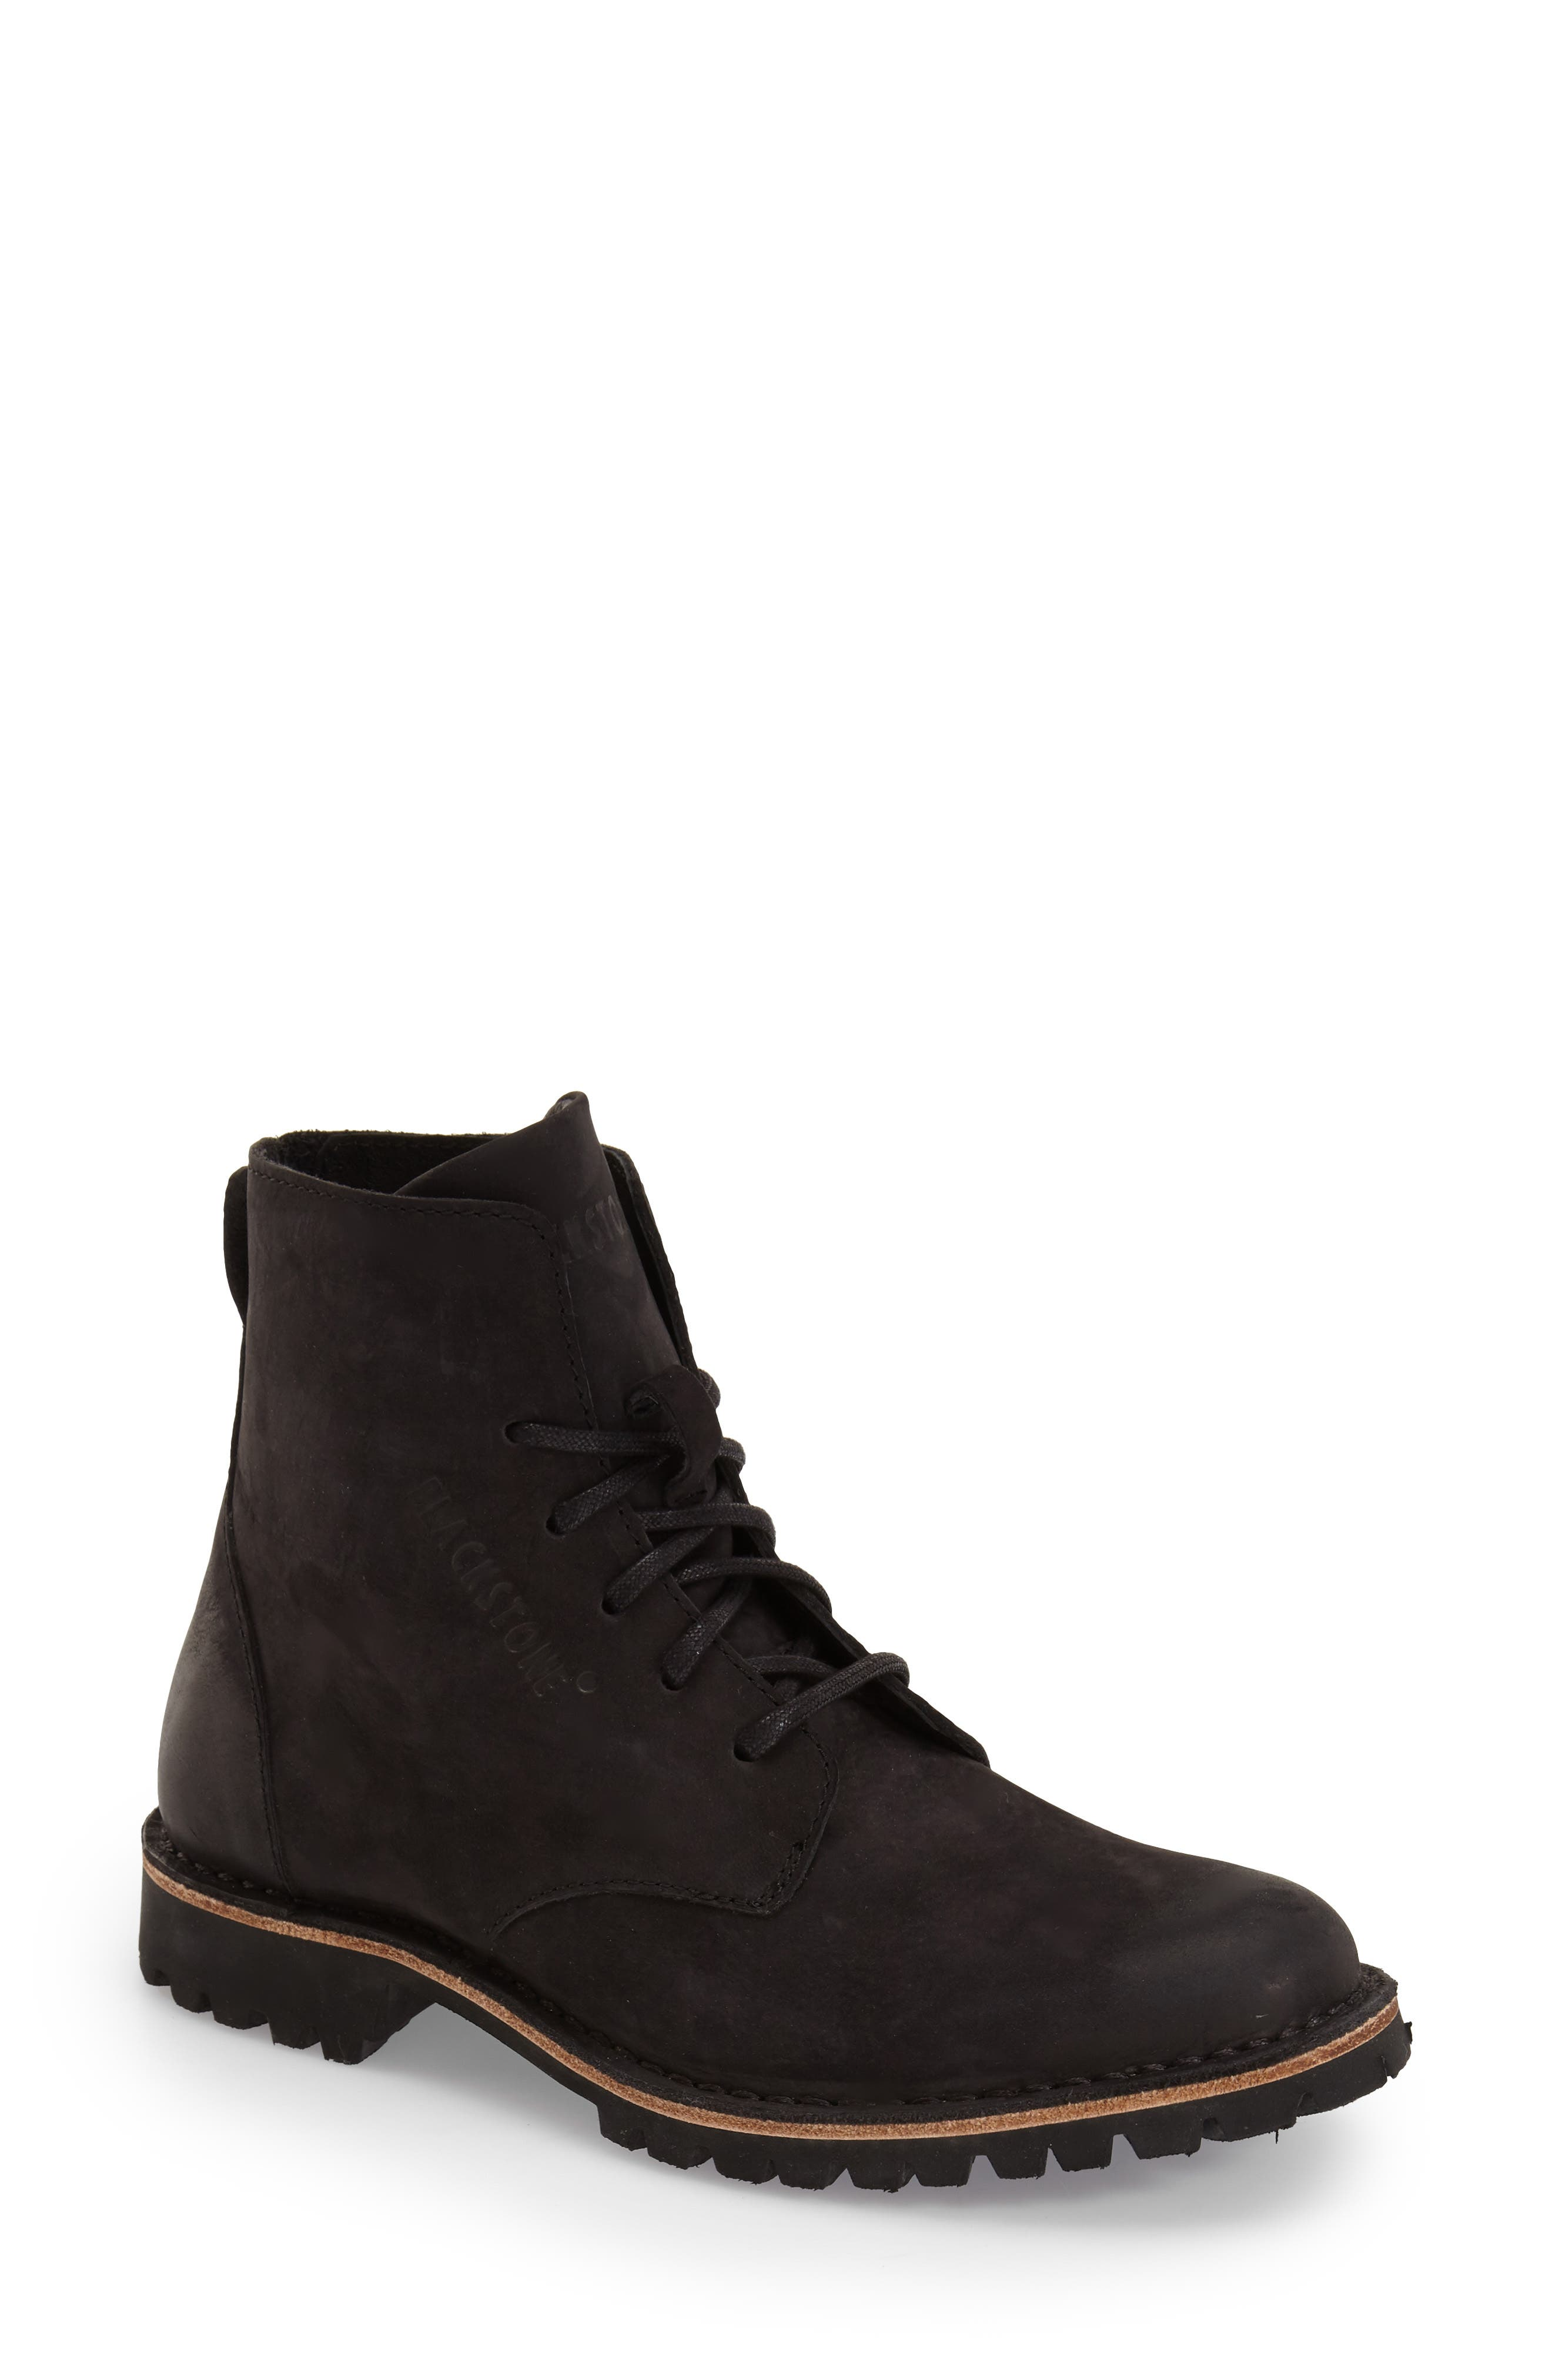 'KL67' Lace-Up Boot,                             Alternate thumbnail 5, color,                             BLACK LEATHER